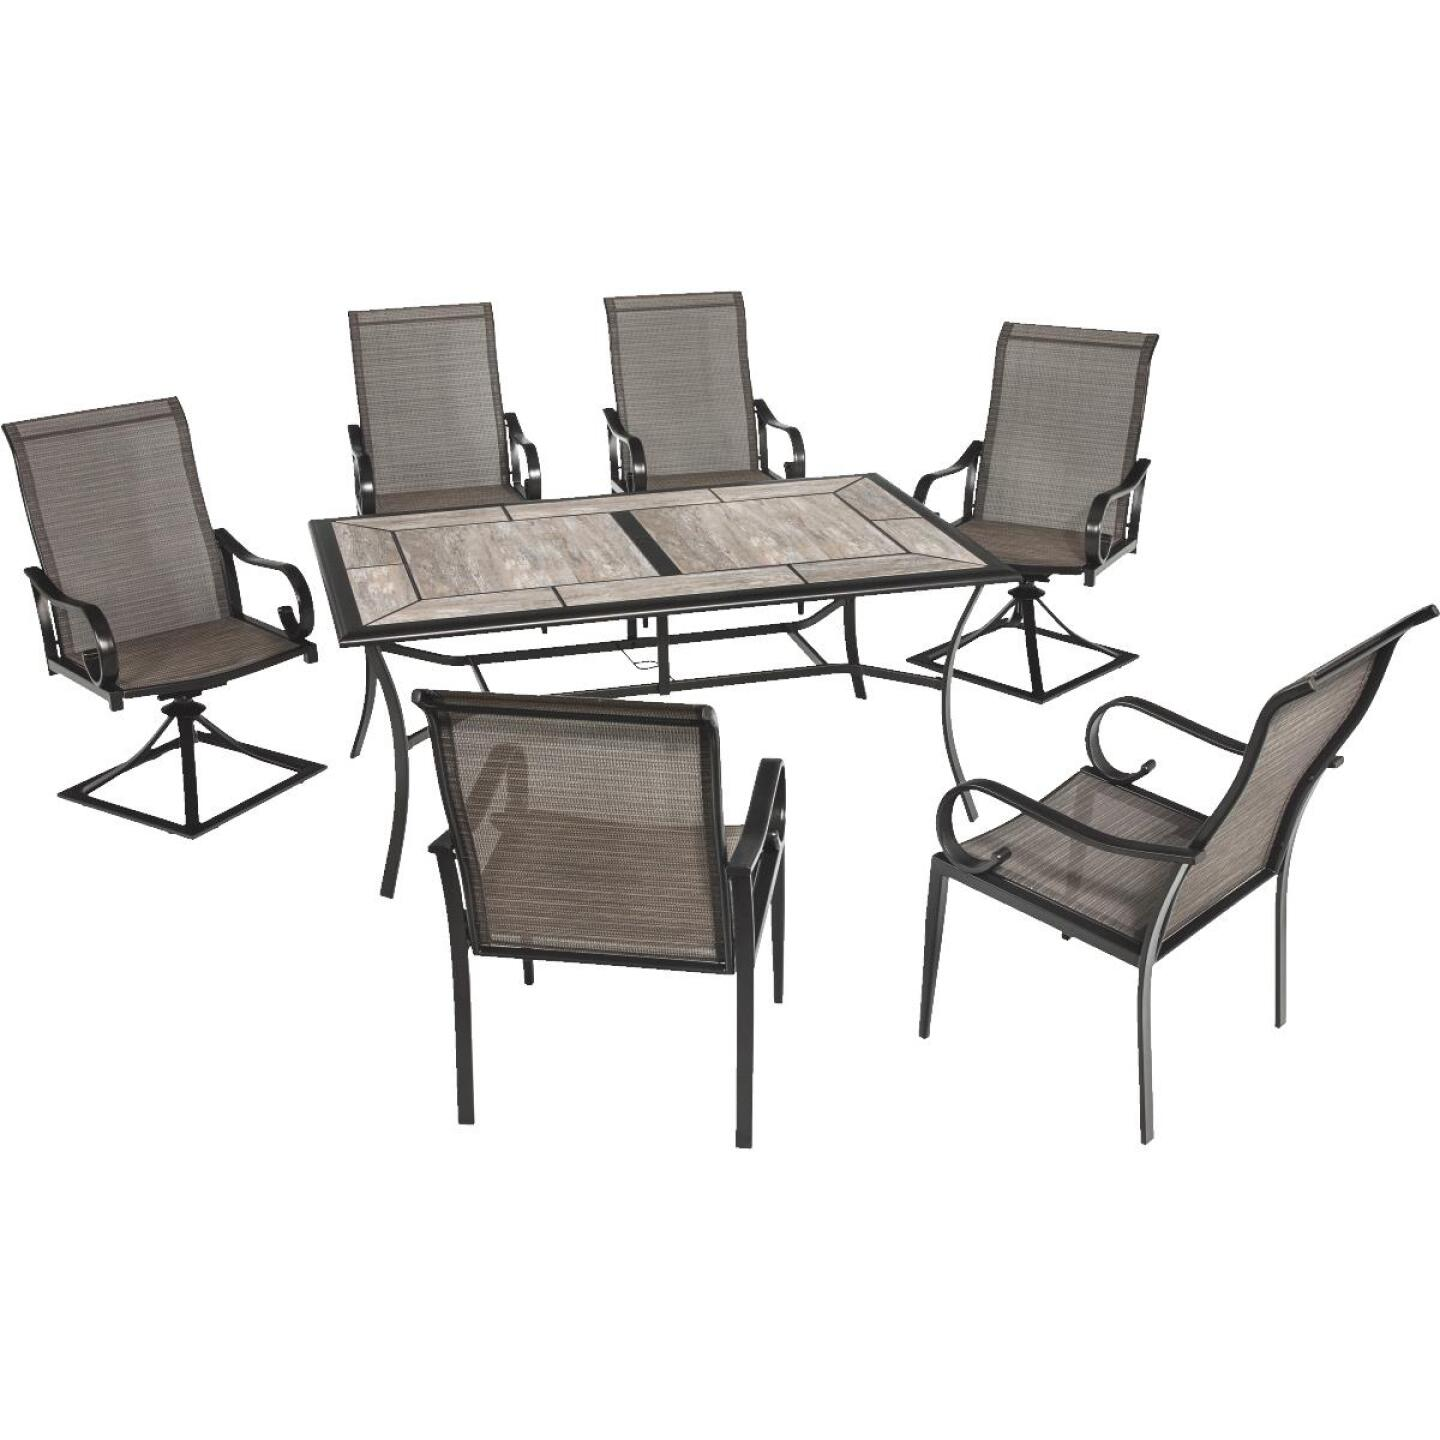 Outdoor Expressions Berkshire 7-Piece Dining Set Image 244